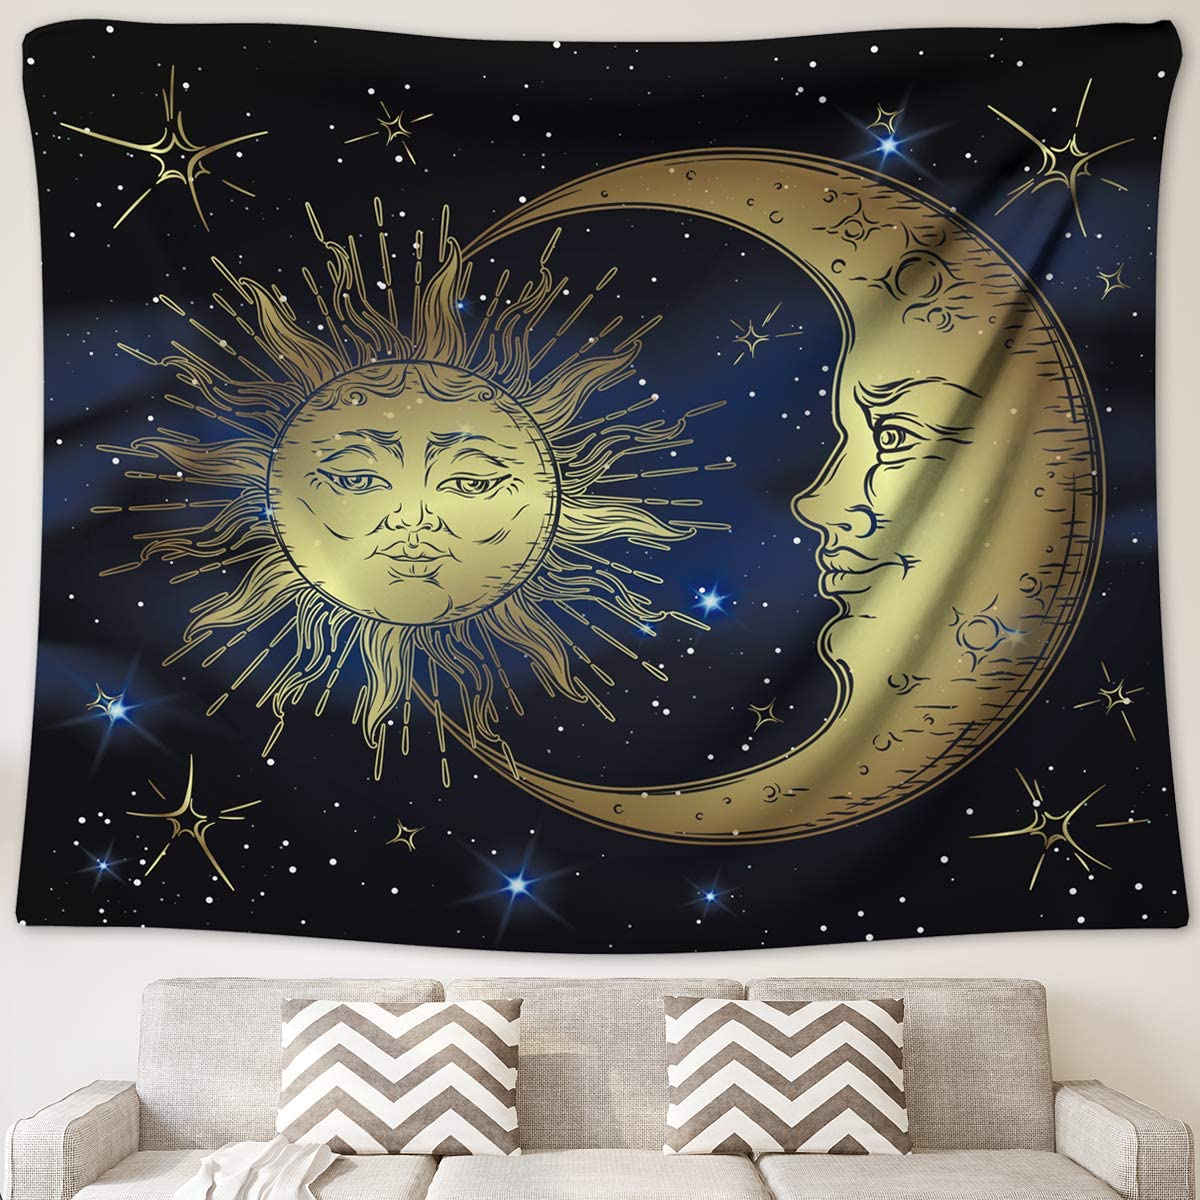 Angeloken Bohemian Design Modern Chic Decor Tapestry,Art Golden Sun Moon and Stars Sky Wall Hanging.(50 Inches X 60 Inches)